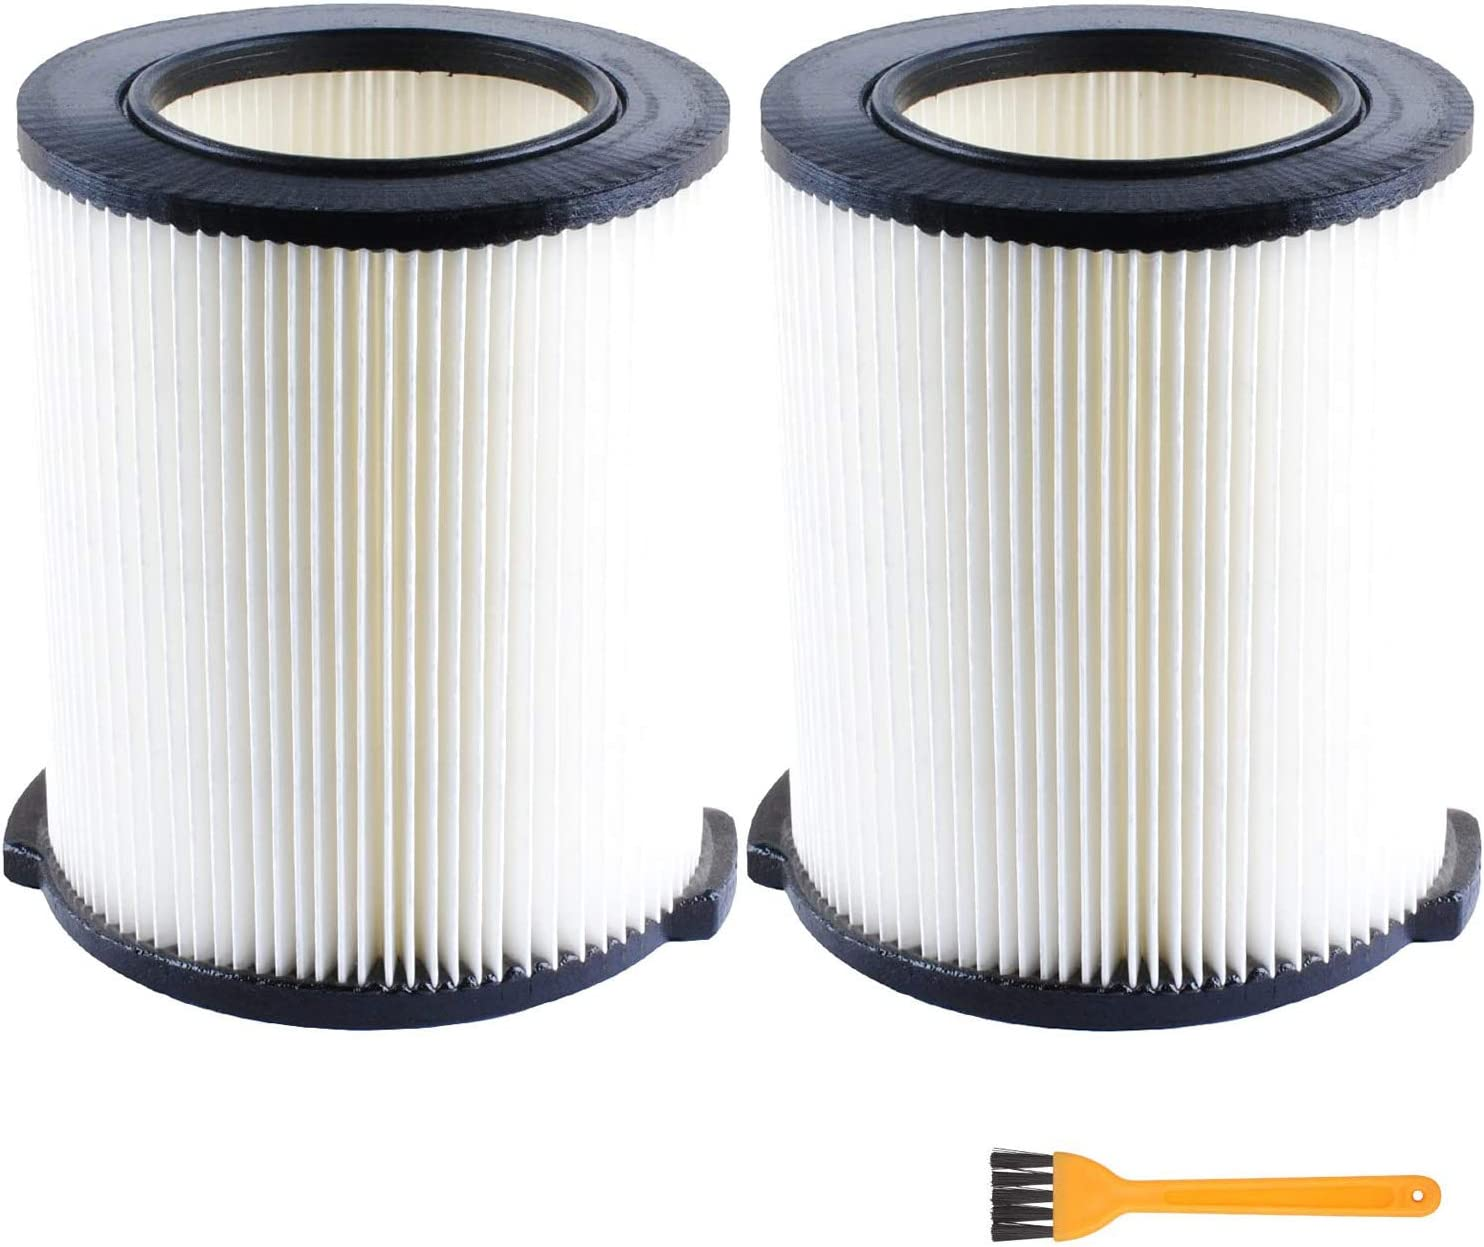 VF4000 Replacement Filter for Ridgid 72947 Wet Dry Vac 5 to 20-Gallon 6-9 Gal Husky Craftsman 17816 Vacuum Compatible WD5500 WD0671 RV2400A RV2600B Washable (2 Pcs)